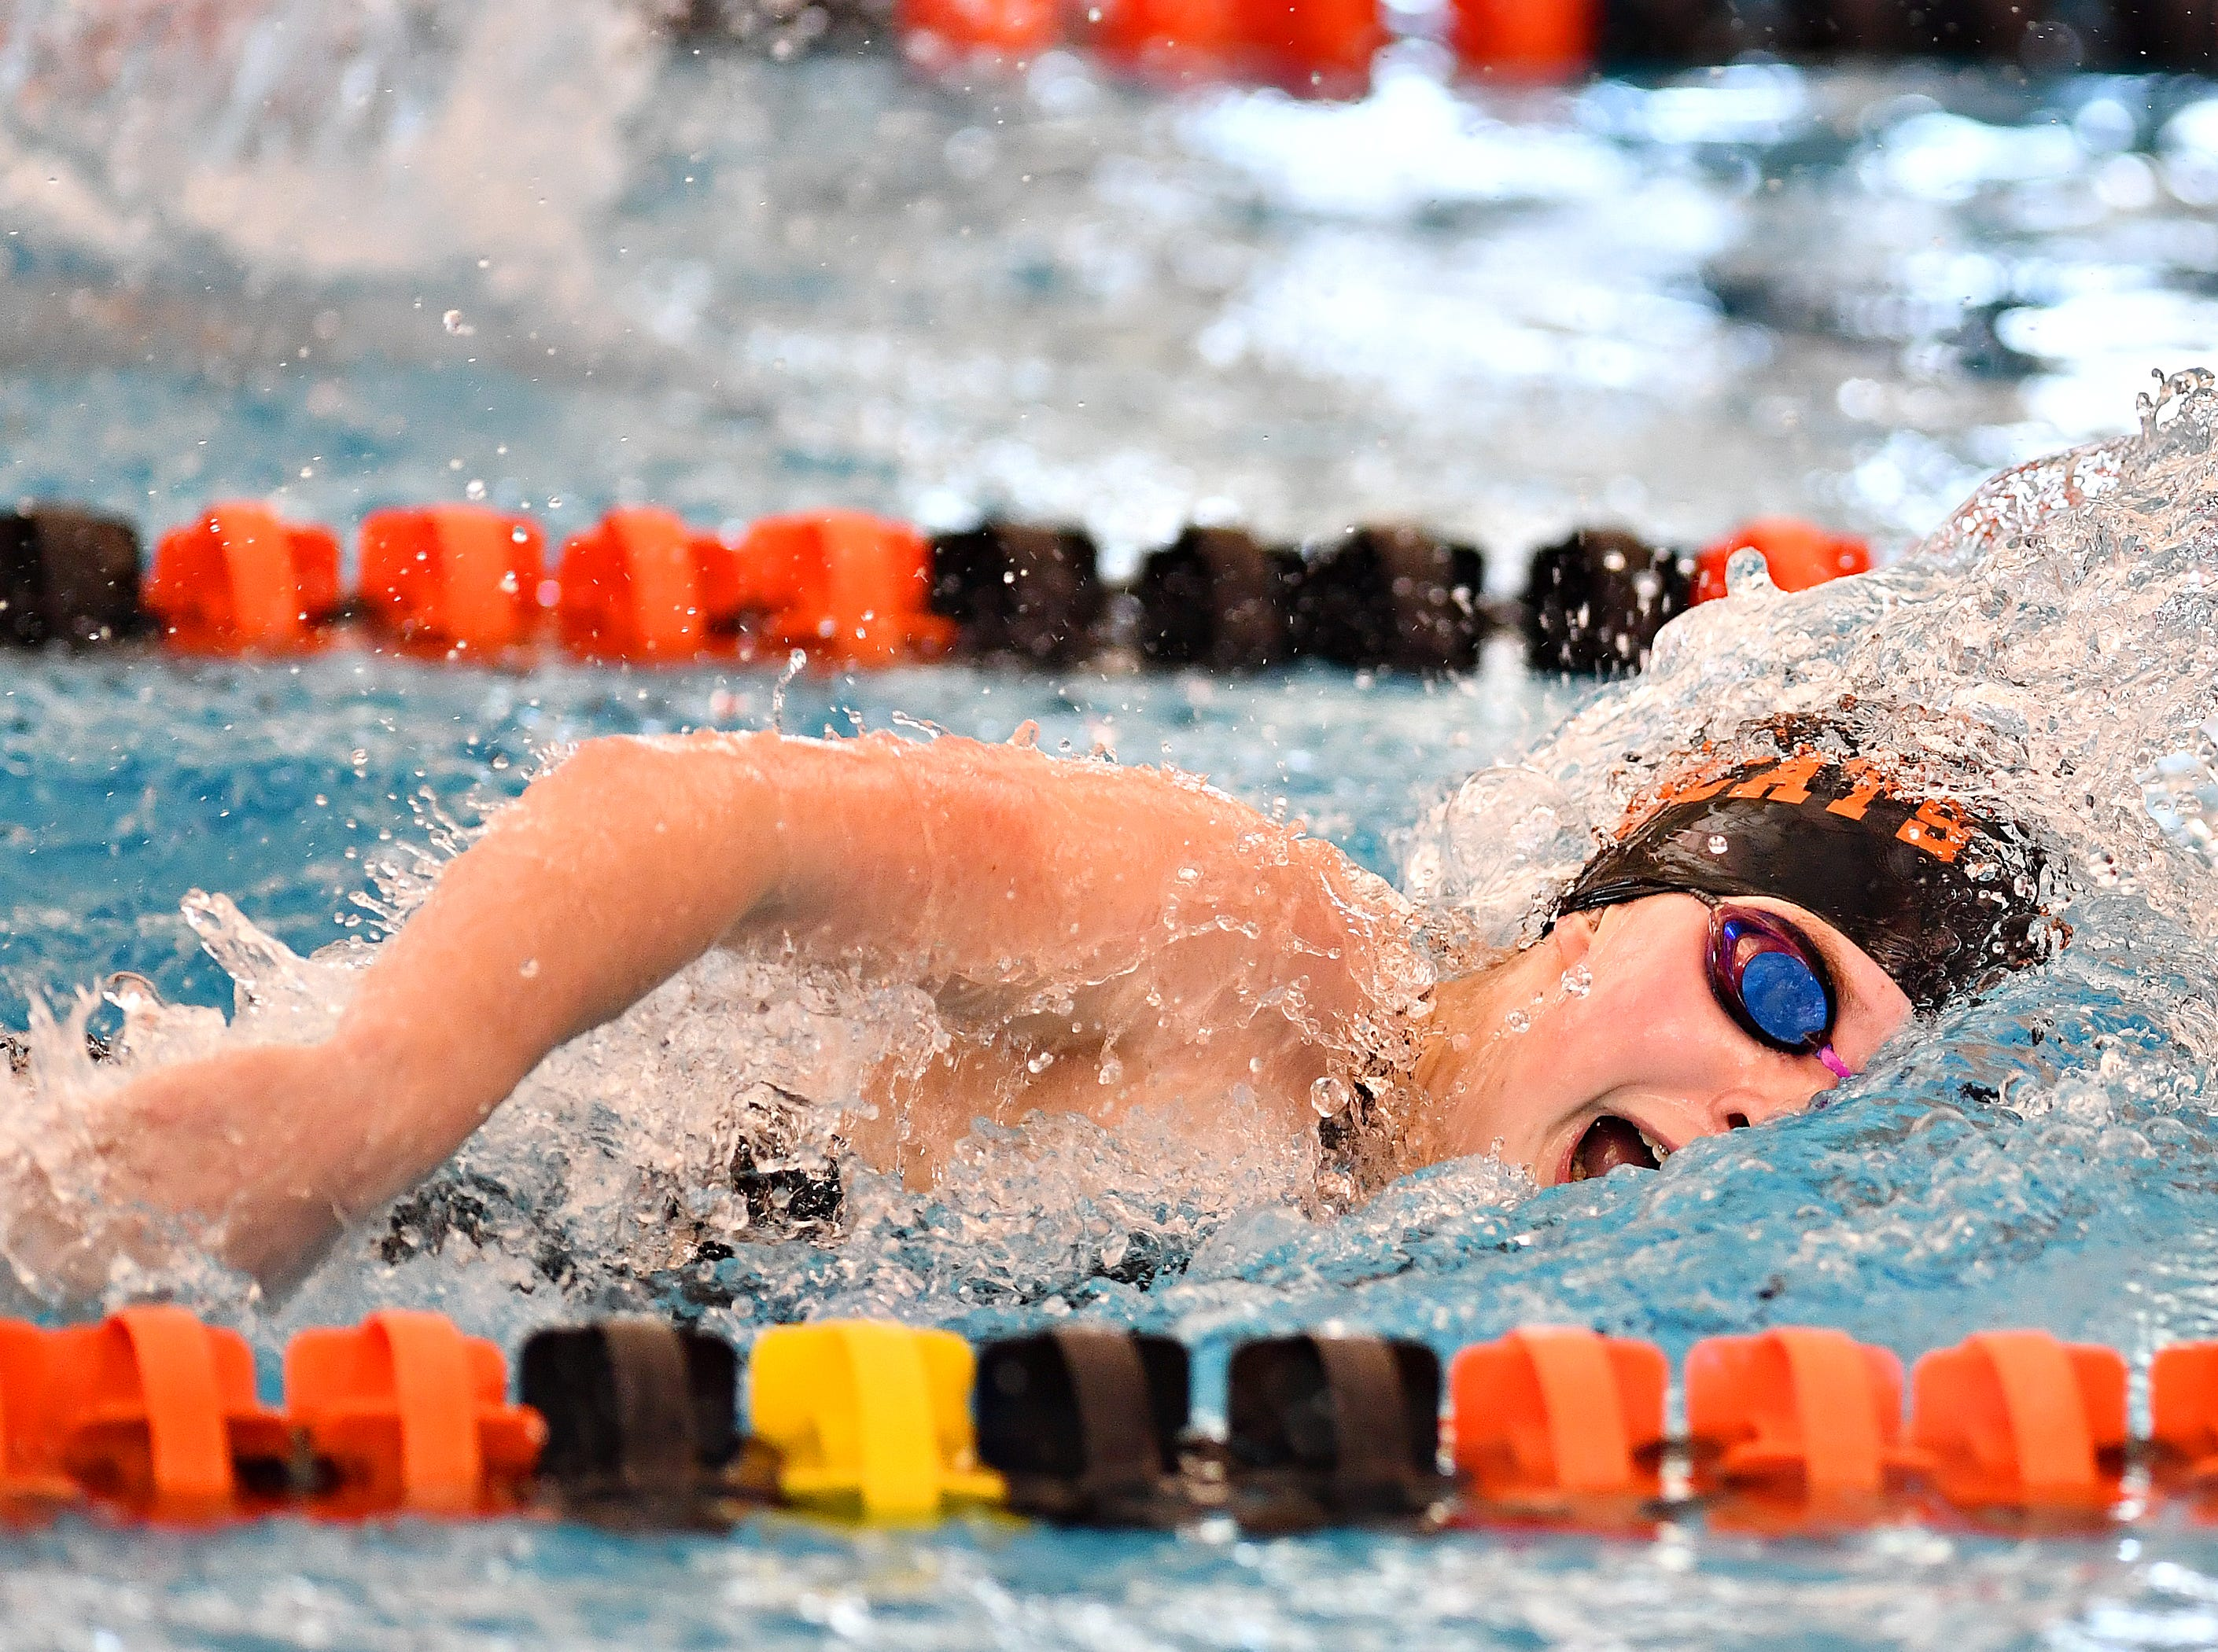 Northeastern's Madison E. Taylor competes in the 100 Yard Freestyle event during York-Adams League Swimming Championship at Central York High School in Springettsbury Township, Saturday, Feb. 9, 2019. Dawn J. Sagert photo